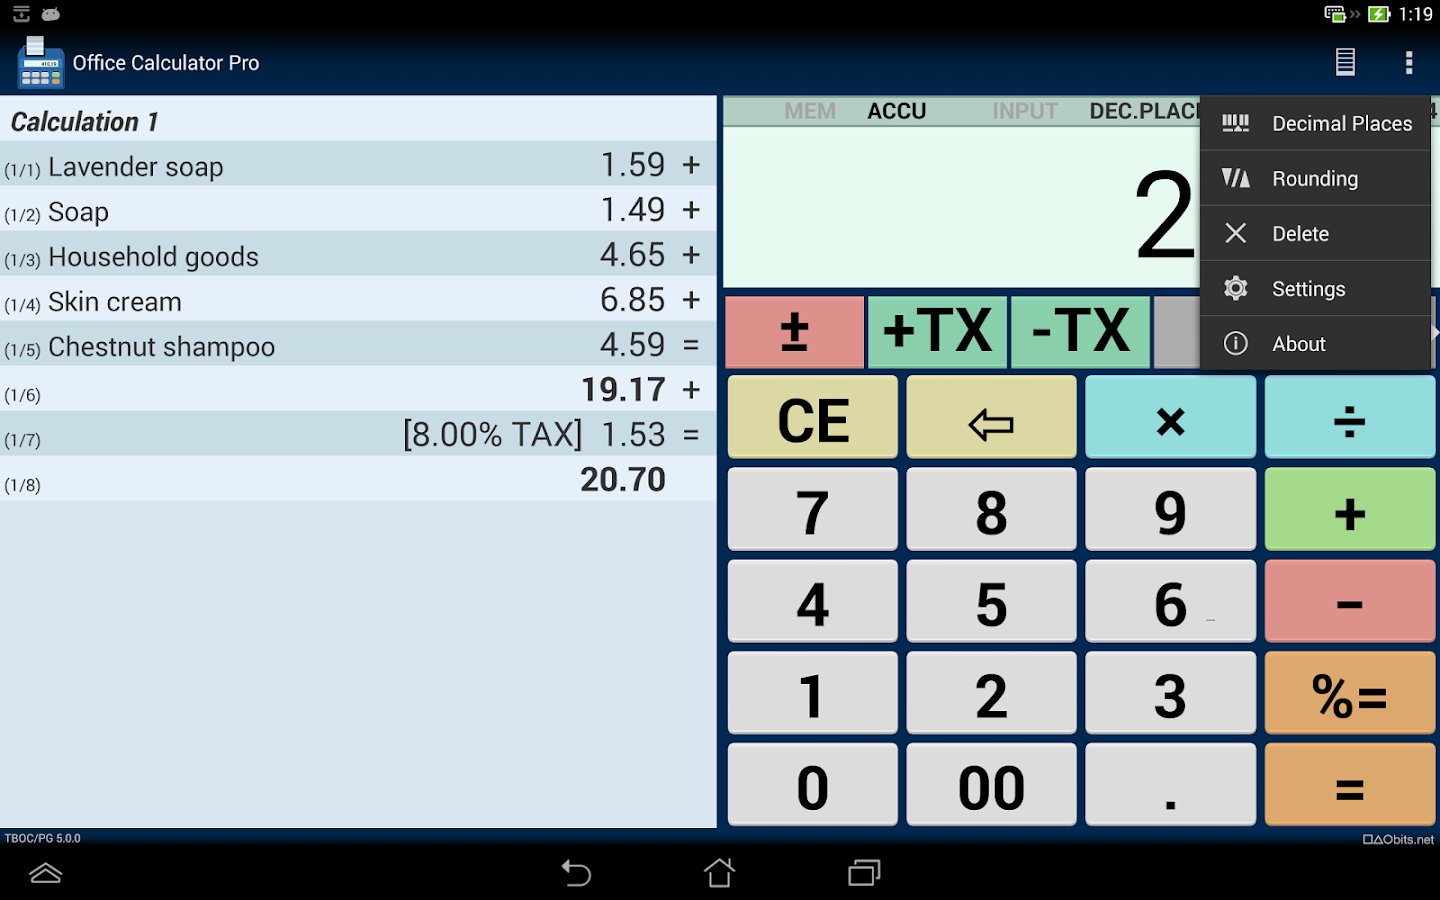 Office Calculator Pro Screenshot 6